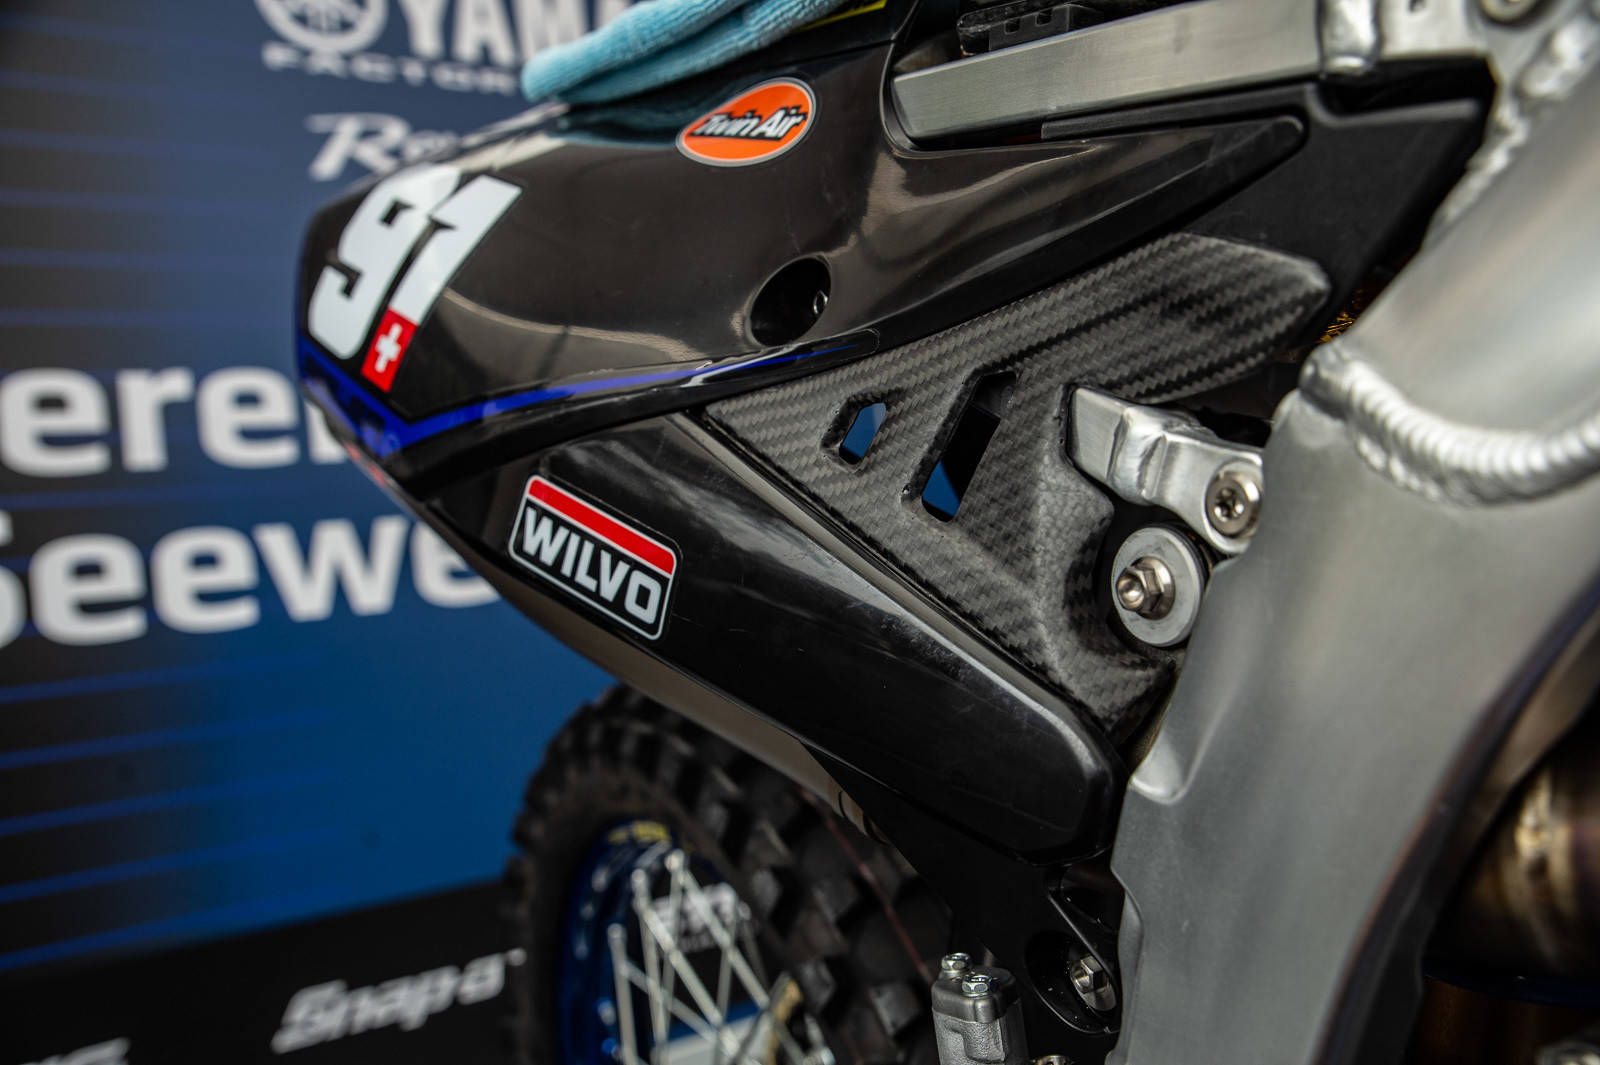 Sweet carbon guards to fill in some of the blank spots on the Yamaha bodywork.